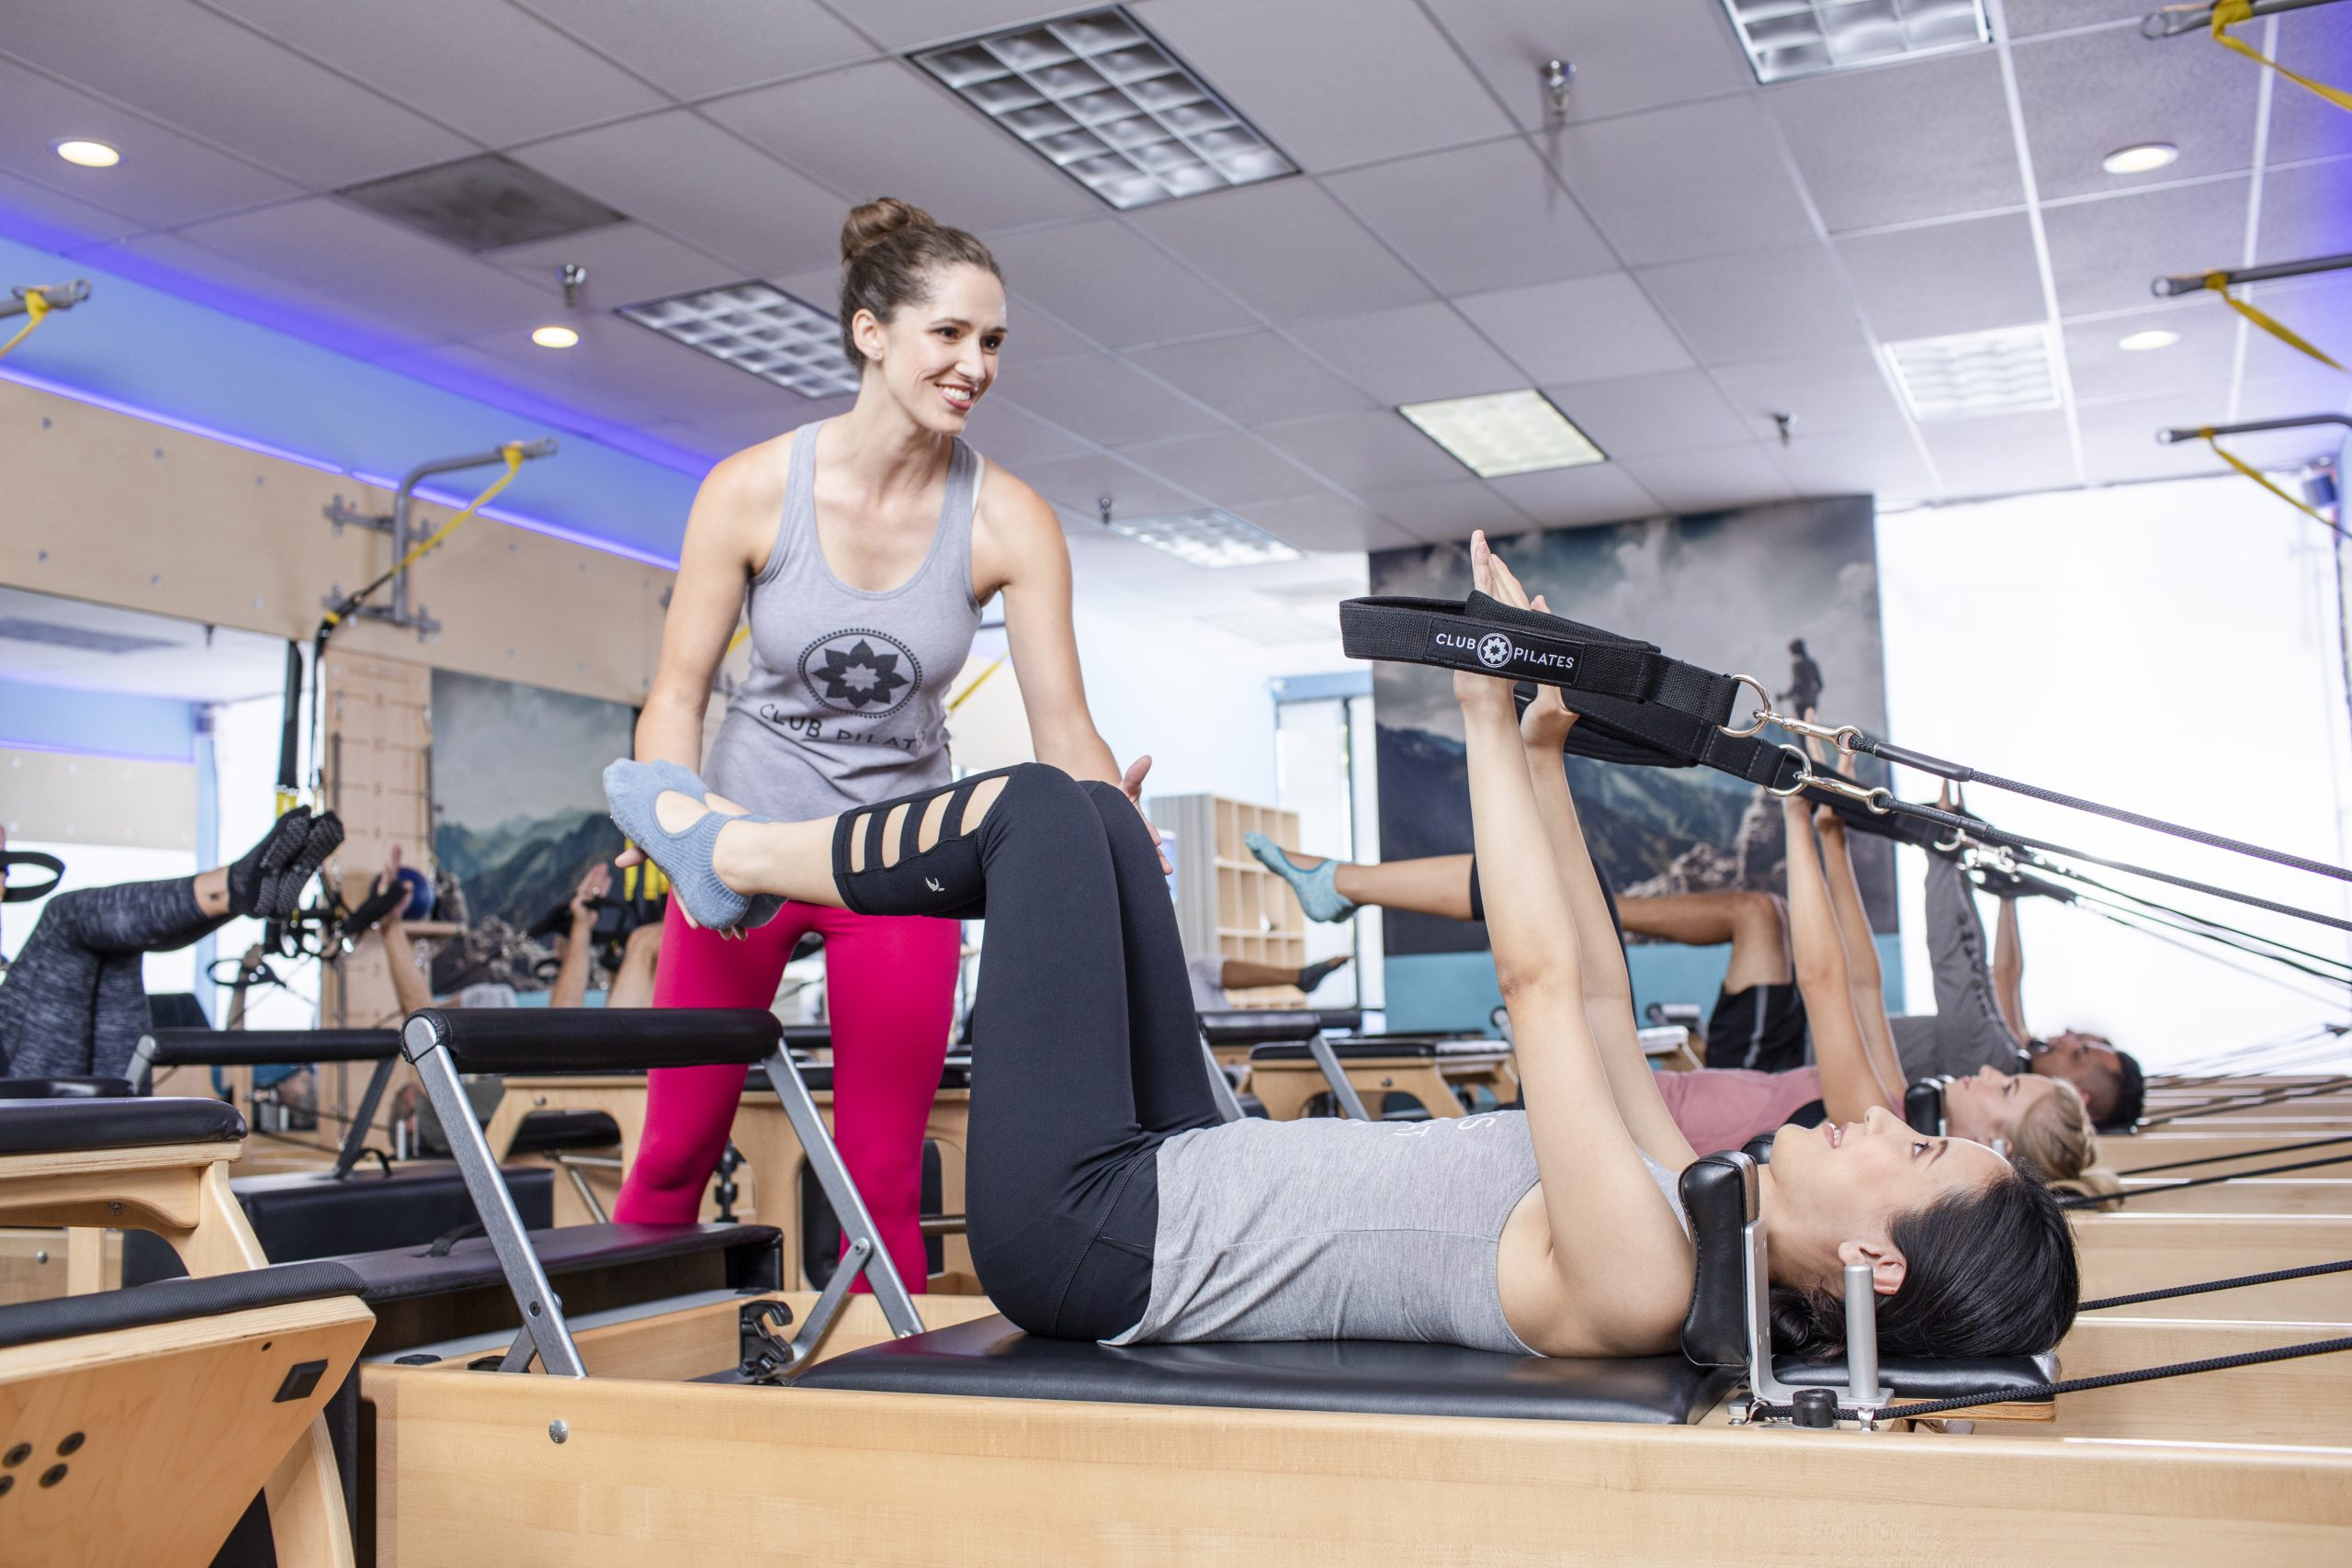 Pilates VS Yoga: Which is Best for You? - women doing Pilates on reformer